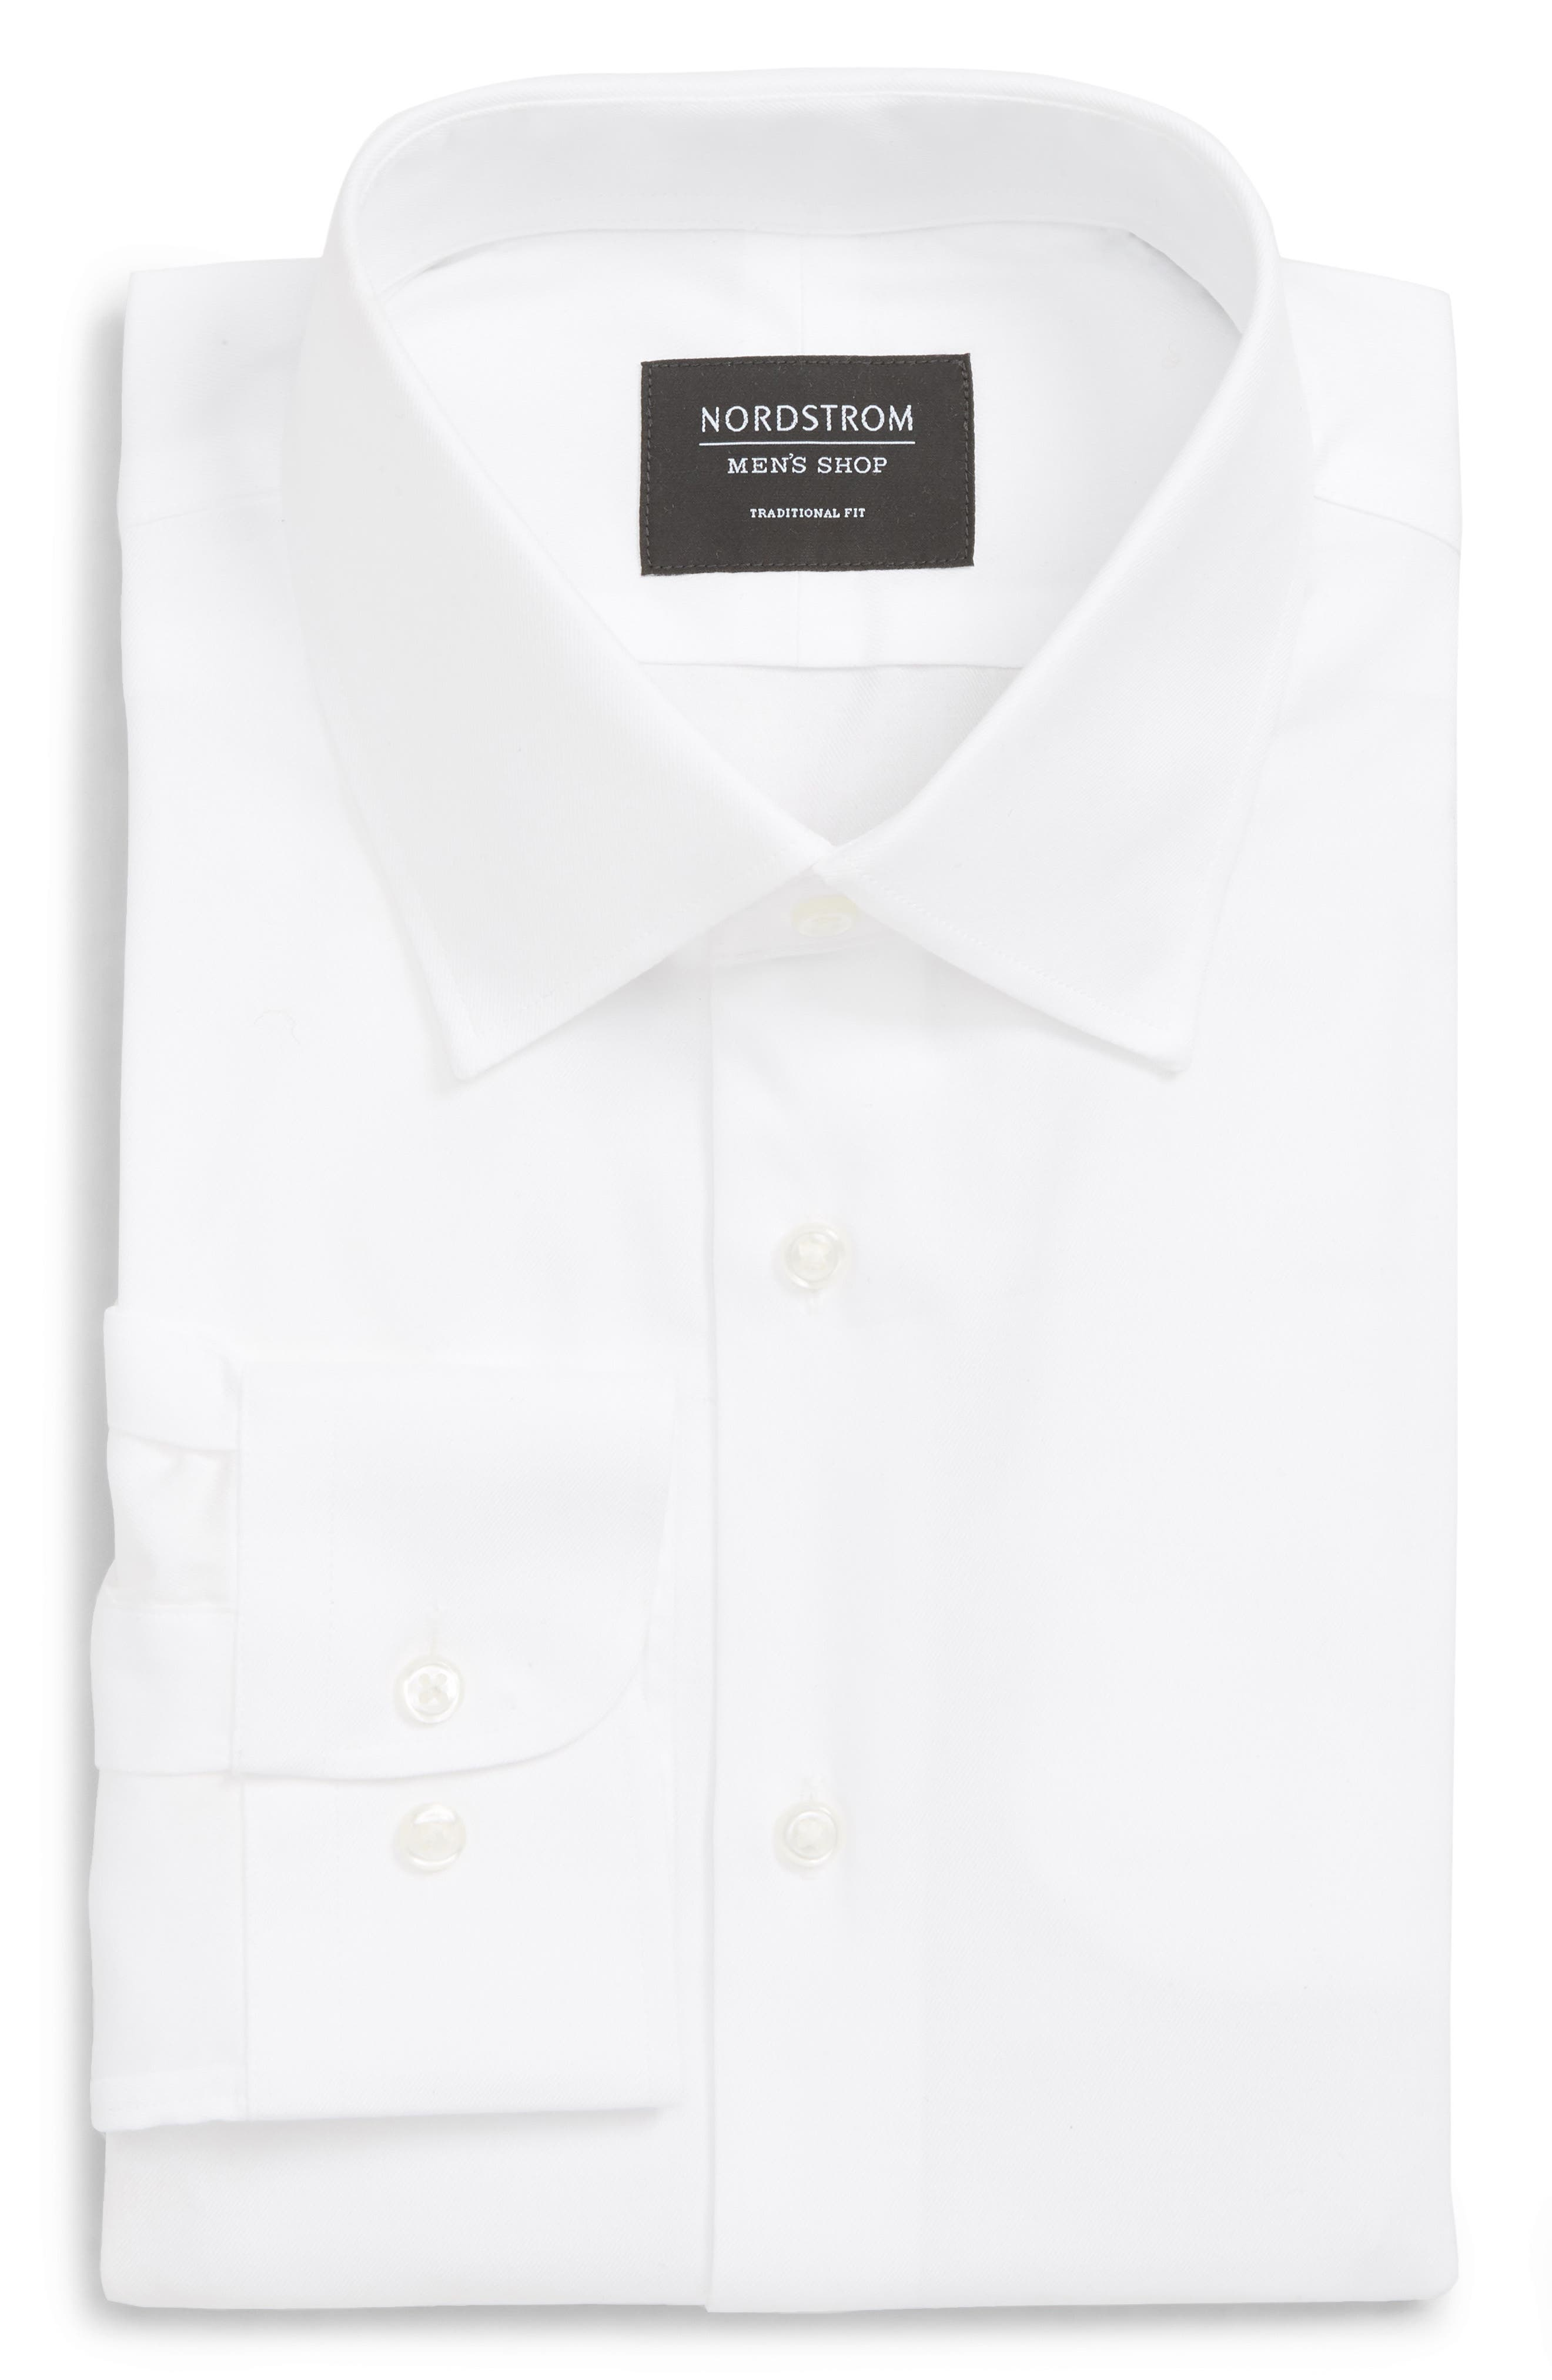 NORDSTROM MEN'S SHOP,                             Traditional Fit Solid Dress Shirt,                             Main thumbnail 1, color,                             WHITE